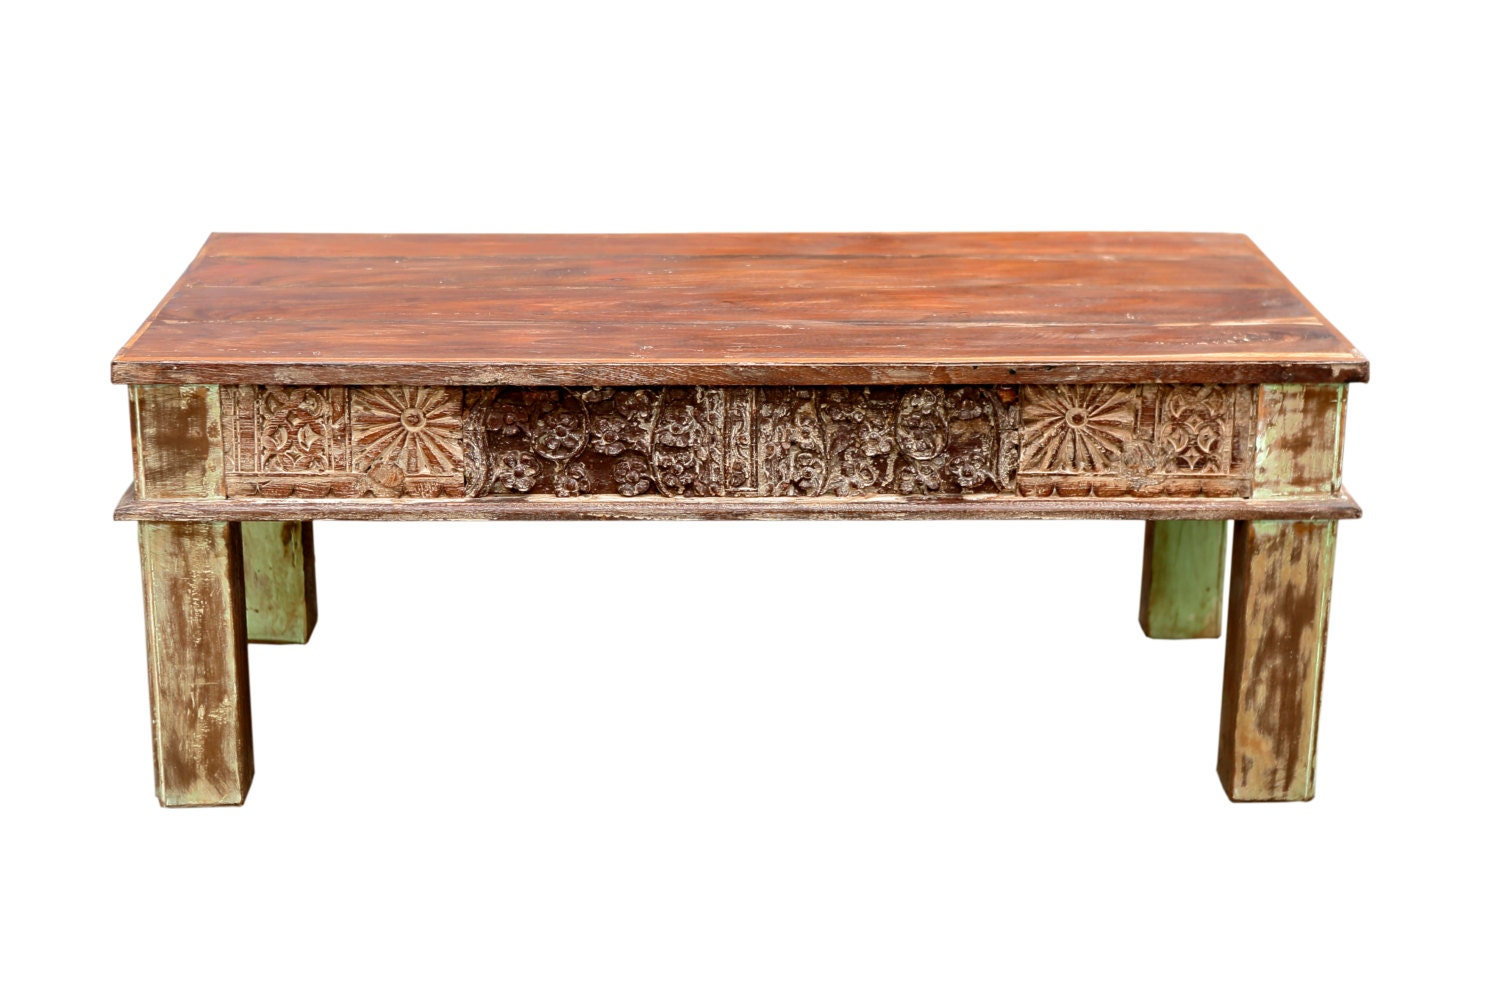 Reconstructed coffee table architectural coffee table indian for Architectural coffee table